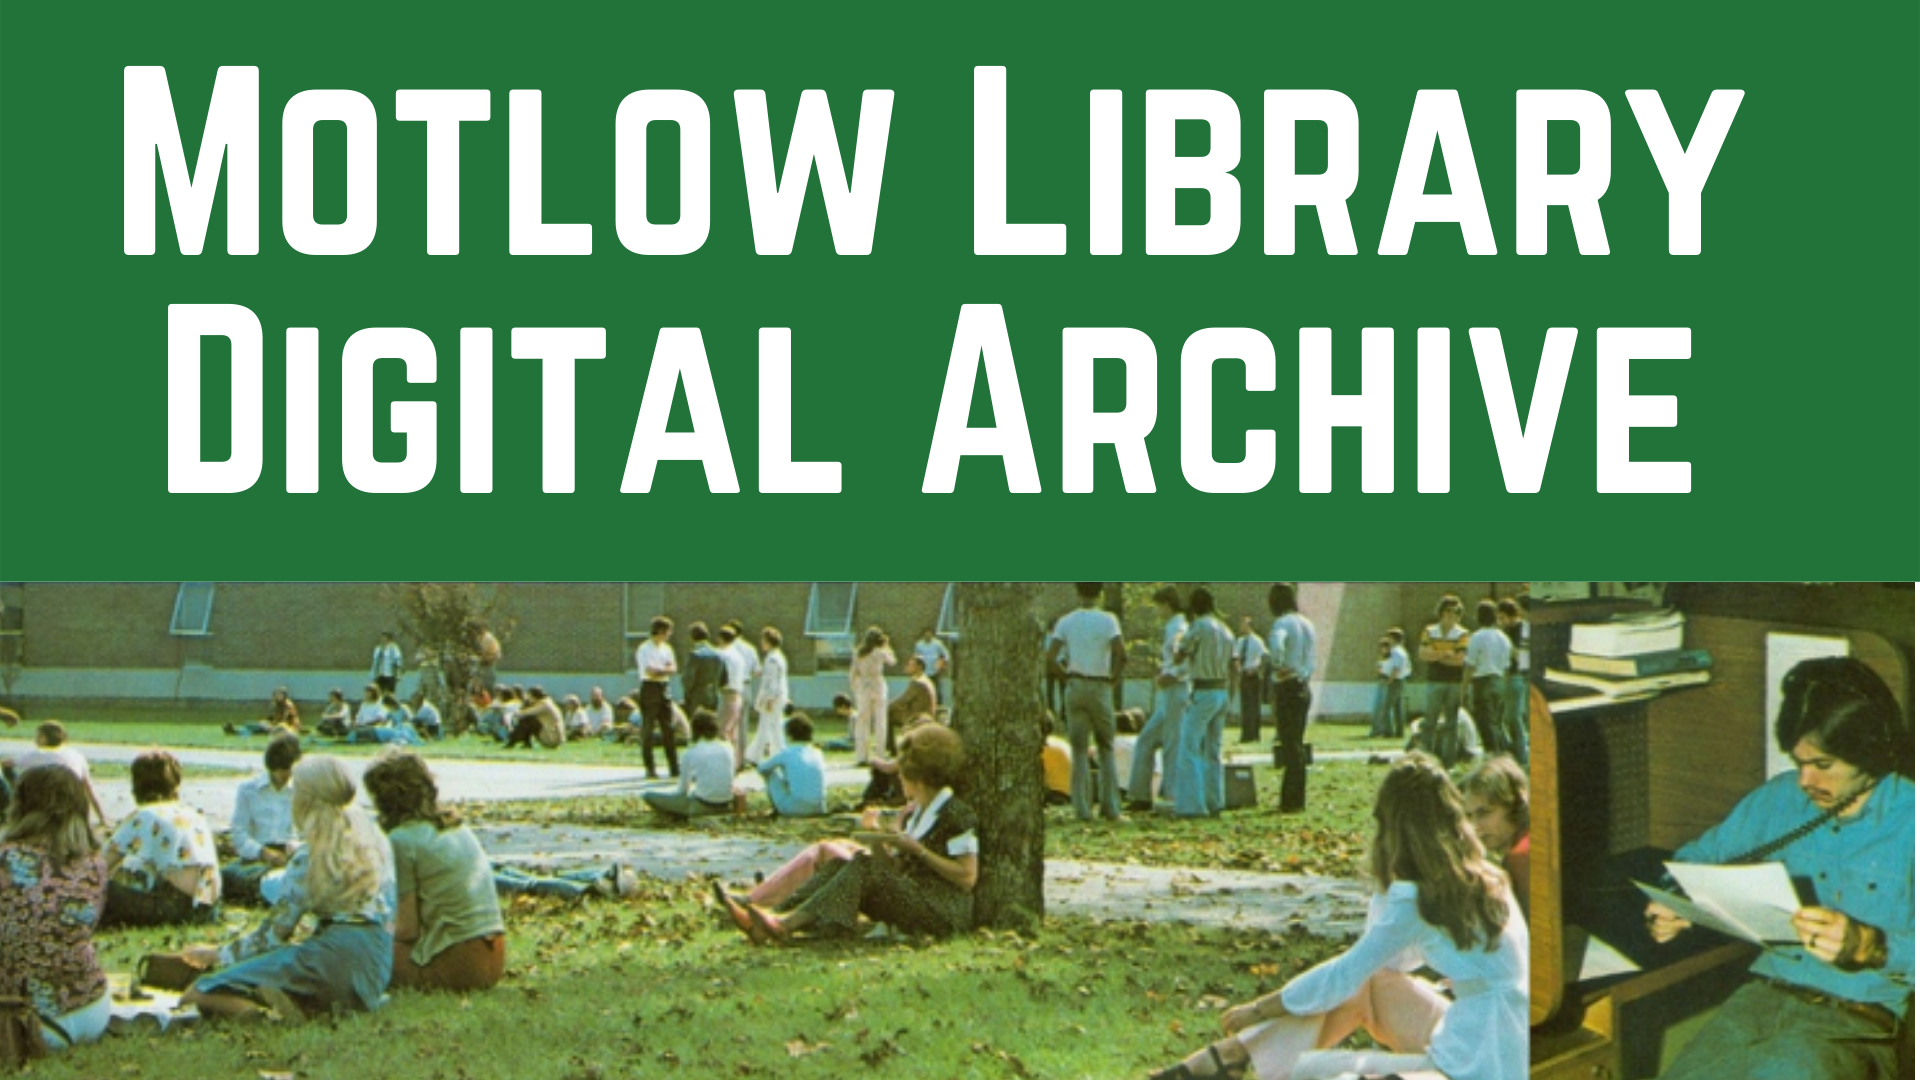 Motlow Library Digital Archive